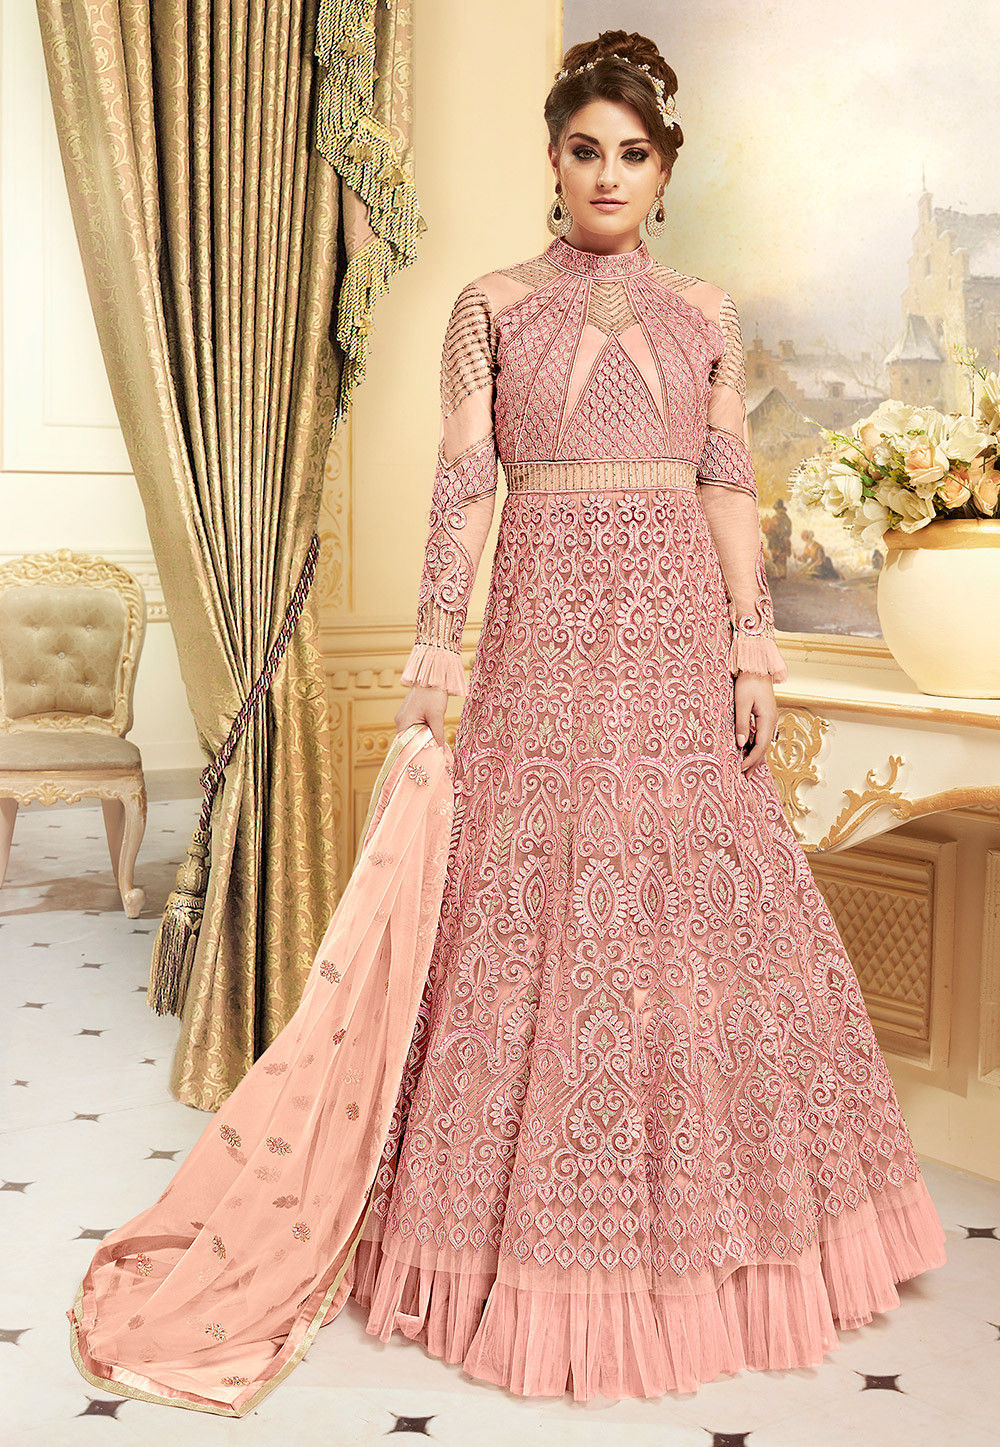 362a161e9 Embroidered Net Lehenga in Light Pink   LCC236